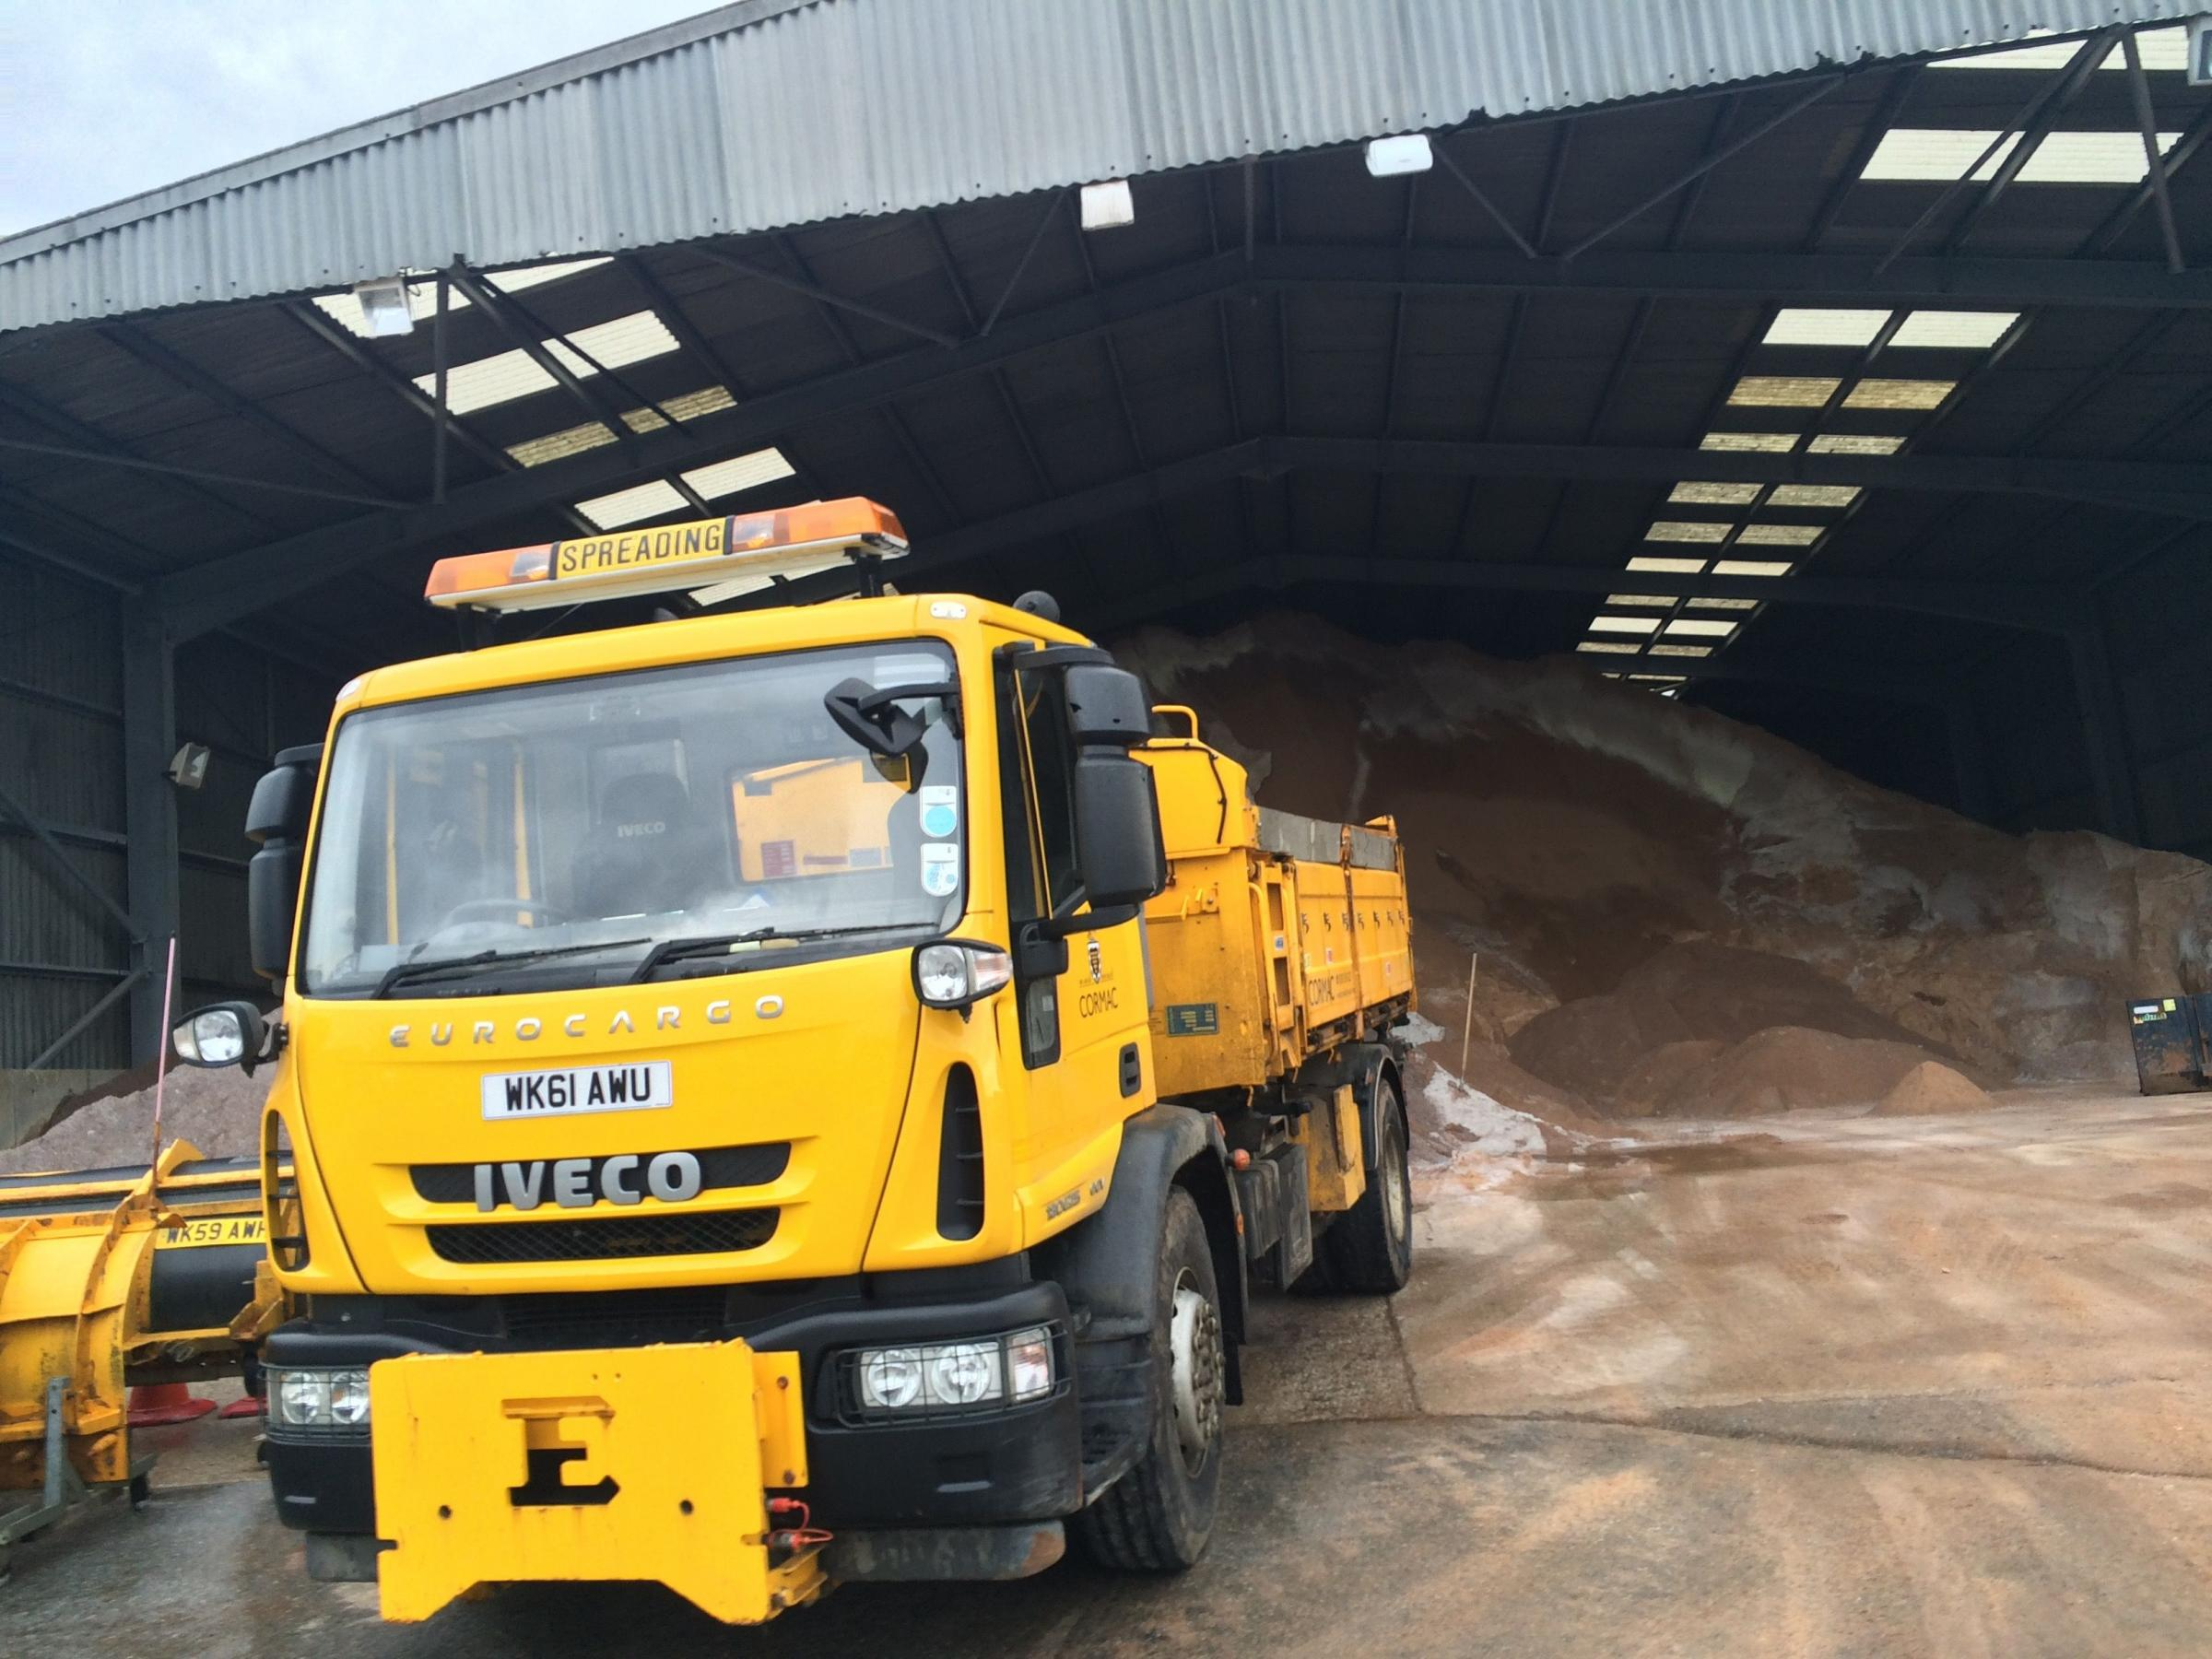 Gritters are ready to hit Cornish roads tonight as freezing temperatures forecast